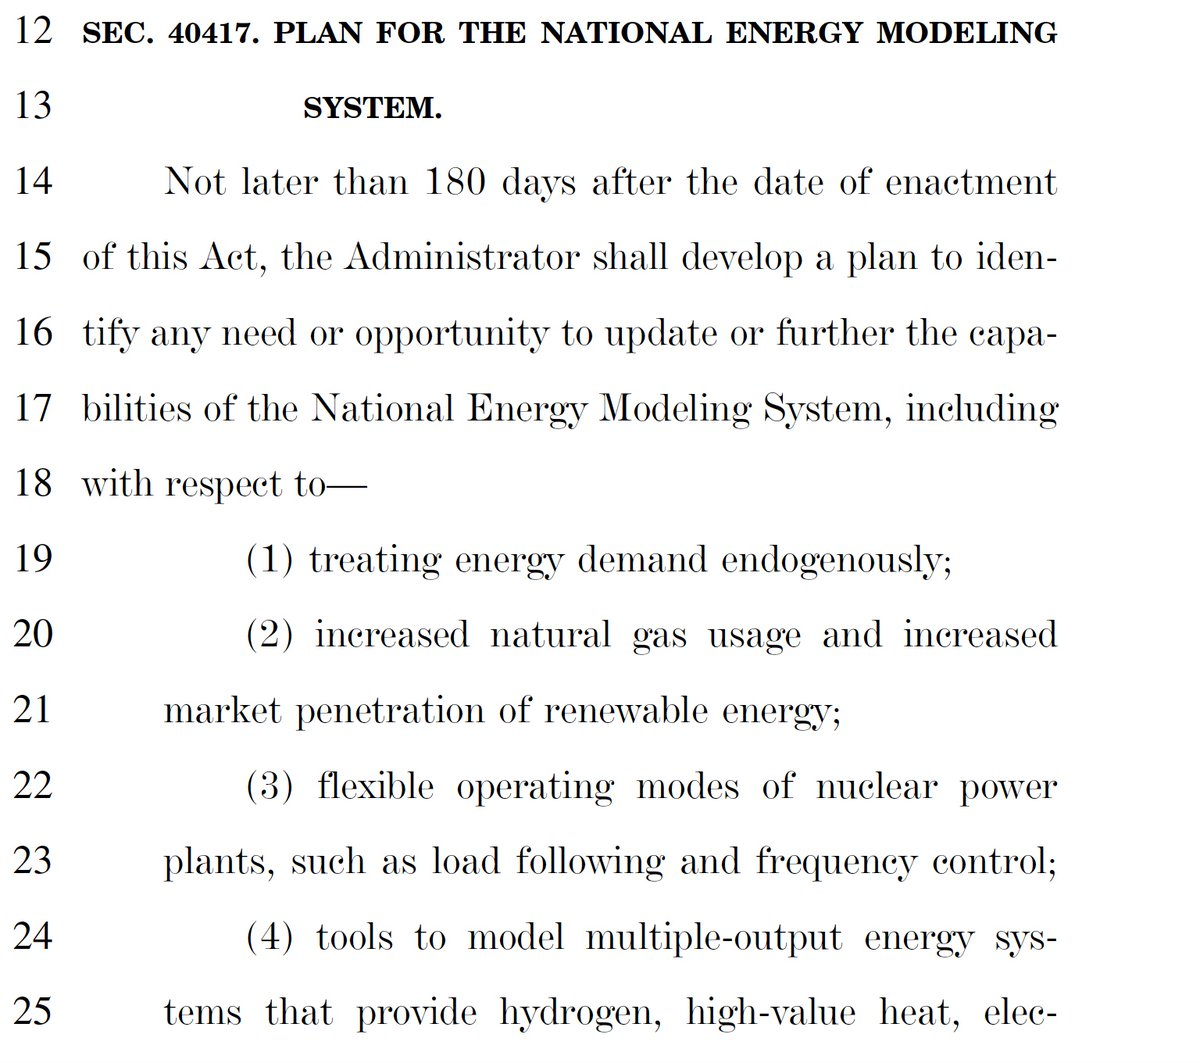 Wow. It looks like @EIAgov's 'bedrock' National Energy Modeling System (NEMS) is getting a Congressionally-directed, open-source, open-data refresh!! #FreeTheModels gets written into the Bipartisan Infrastructure Deal.   @jfdecarolis must have done some good lobbying here 😉 https://t.co/h4pLG5PKoE